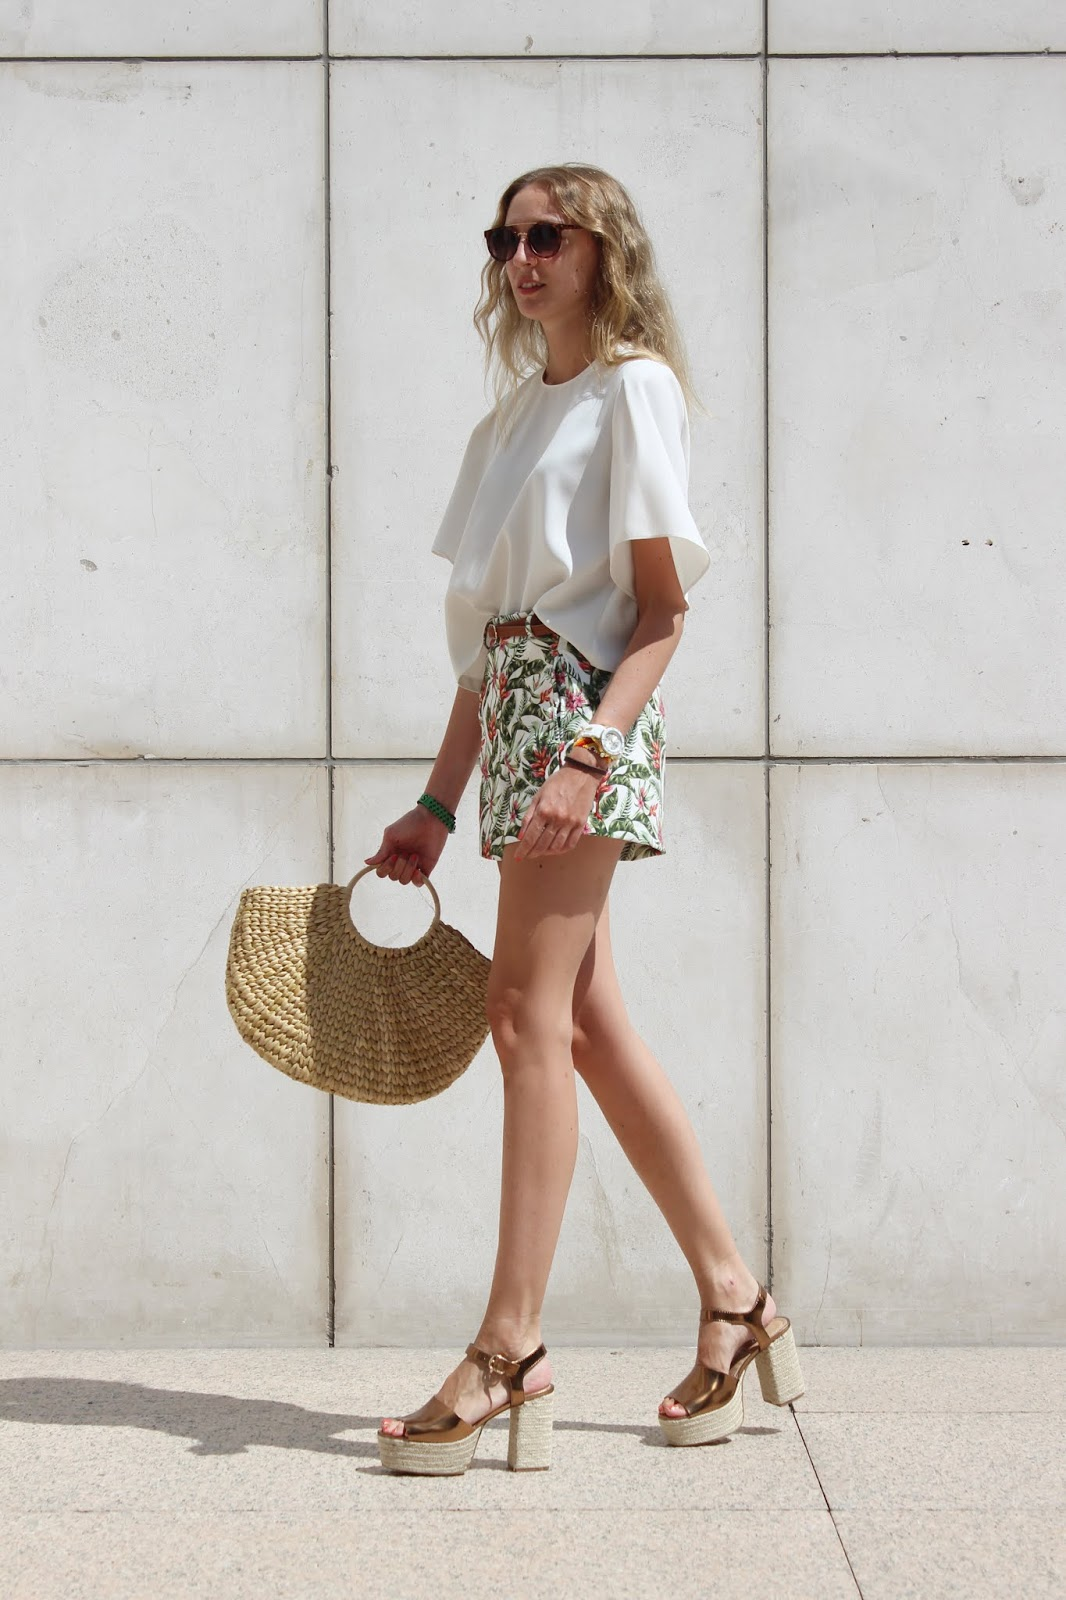 tropical-shorts-street-style-look-straw-bag-straw-heels